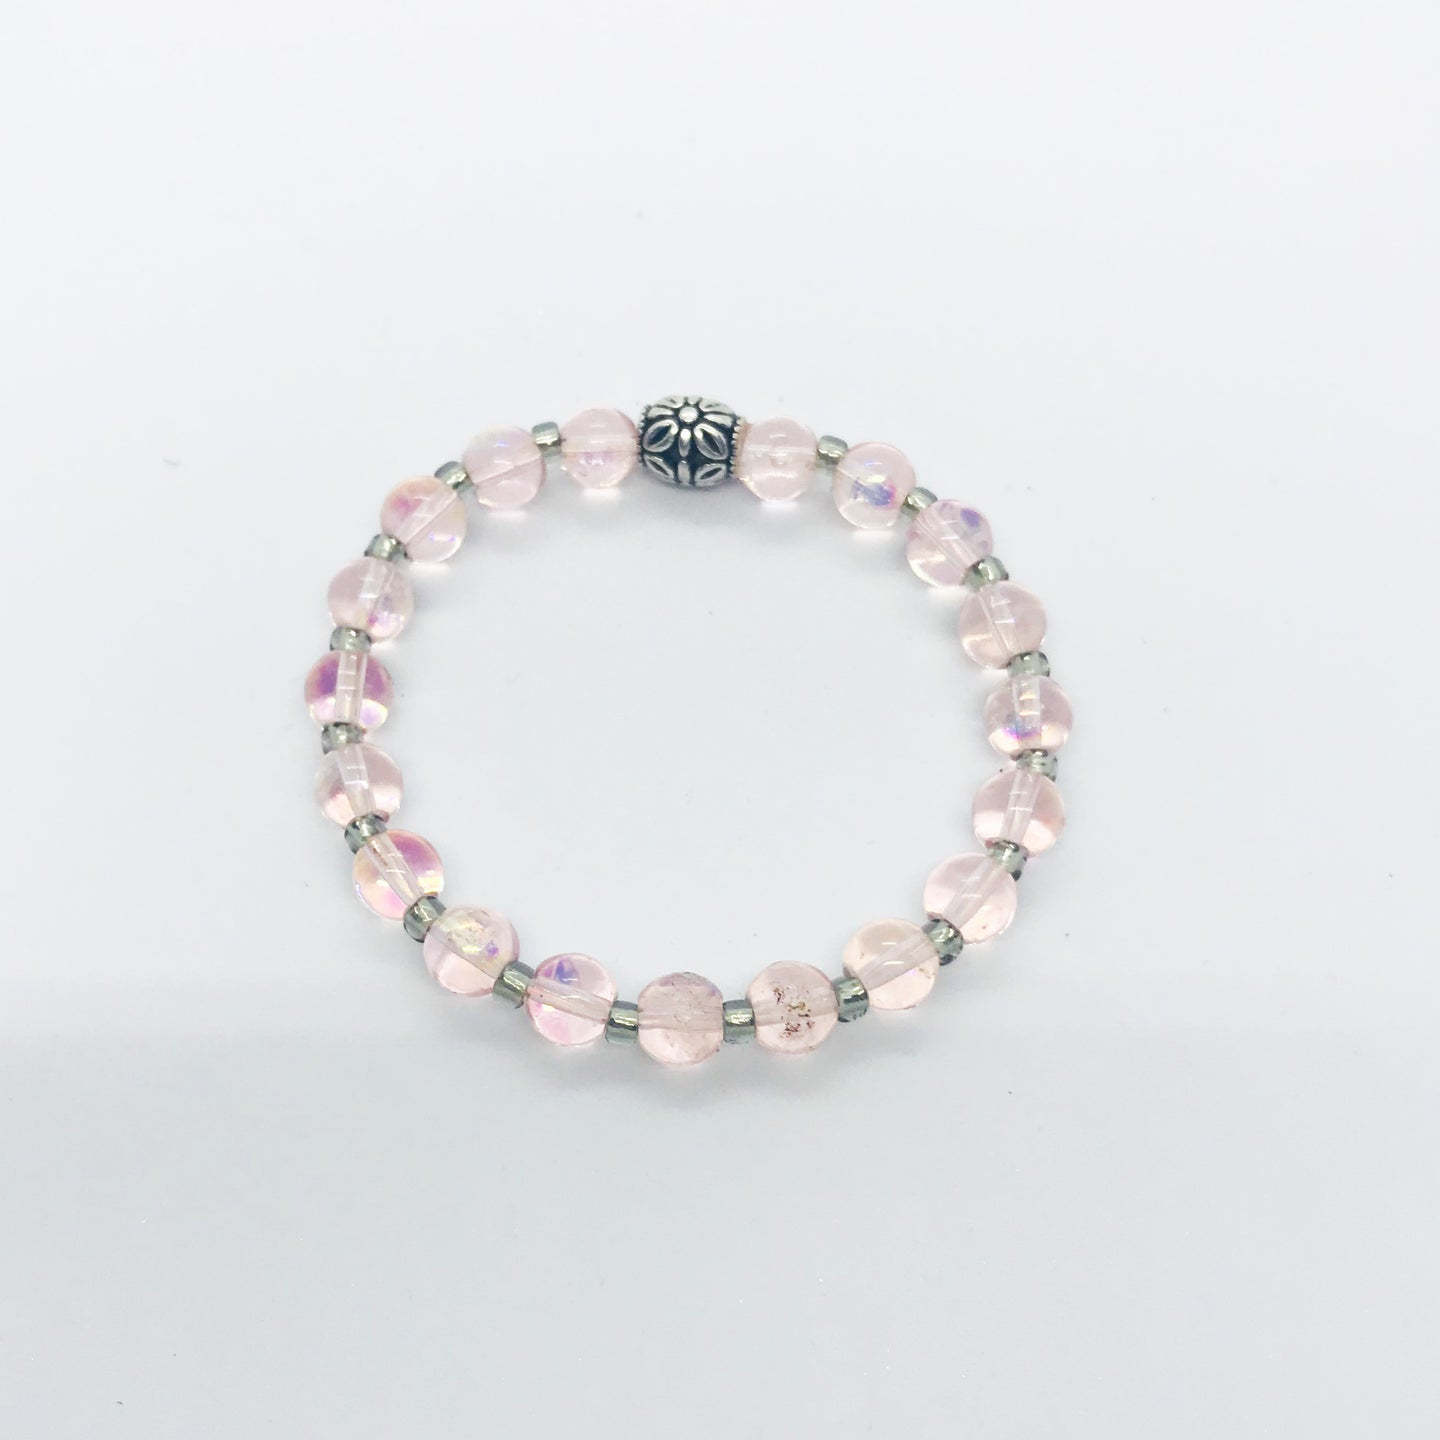 Glass Bead Stretchy Bracelet - B665